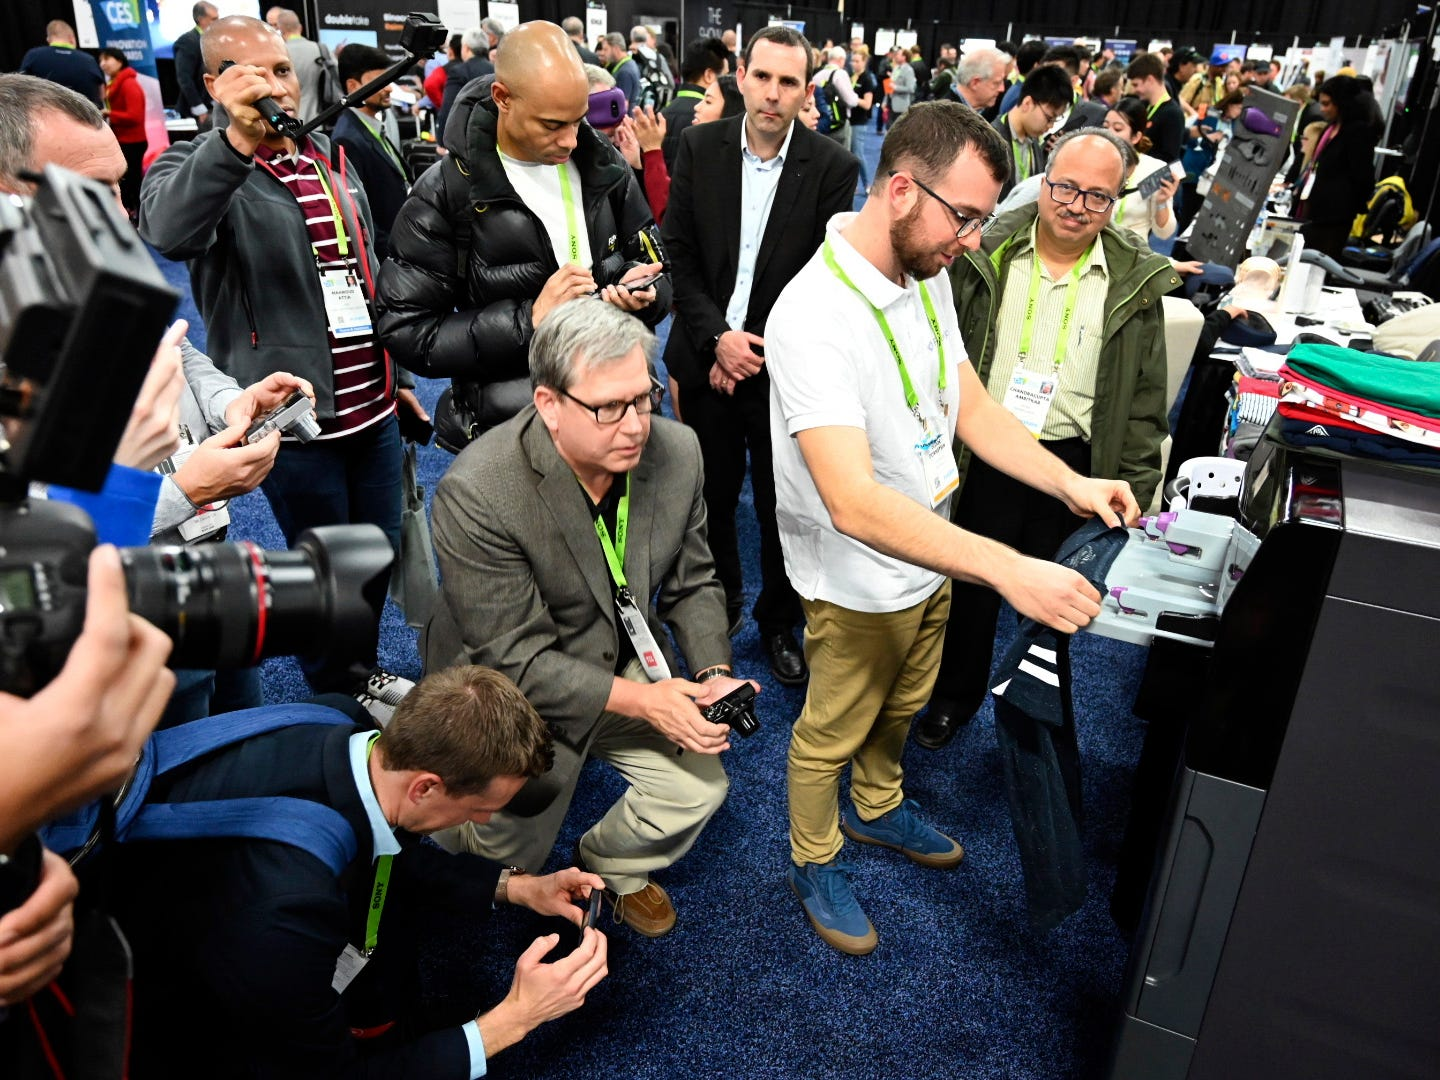 January 6, 2019; Las Vegas, NV, USA;  A demonstration of FoldiMate draws a crowd at CES Unveiled, a media preview event at the Mandalay Bay Convention Center. The company says the laundry folding machine can fold a load of laundry in five minutes. Mandatory Credit: Robert Hanashiro- USA TODAY NETWORK ORIG FILE ID:  20190106_ajw_usa_982.jpg